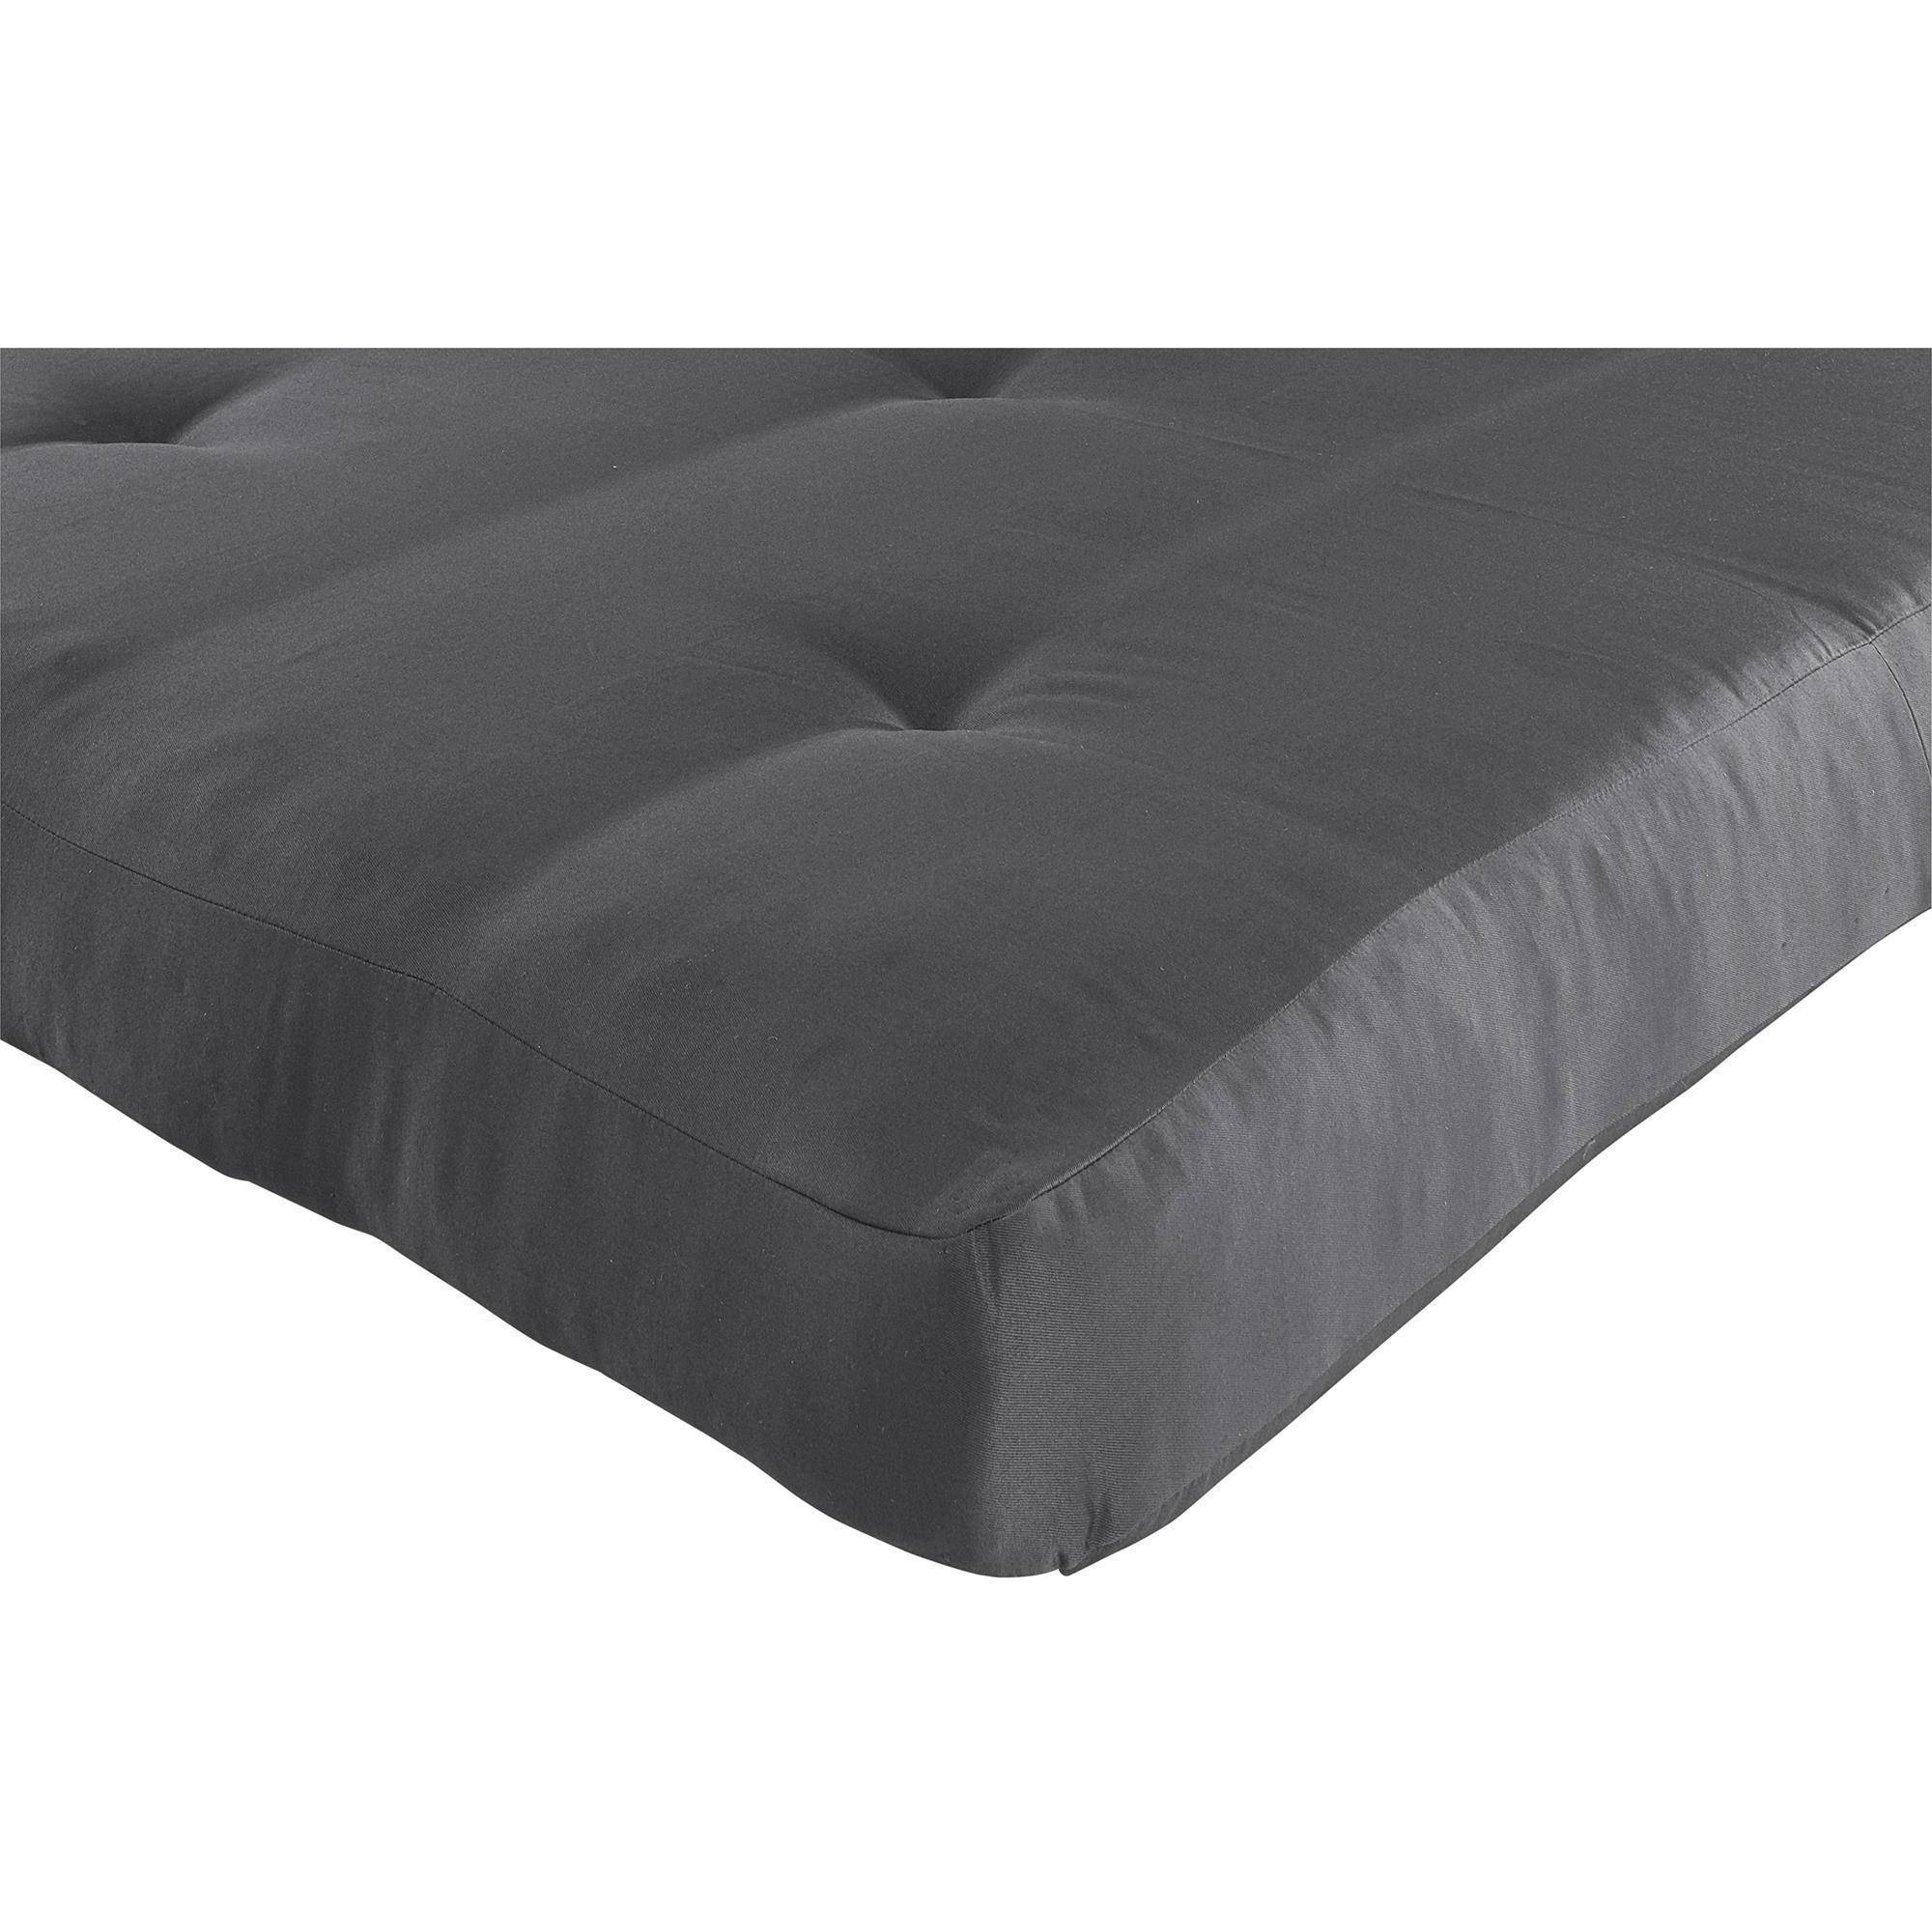 Futon mattresses at walmart roselawnlutheran for Sofa bed mattress pad walmart